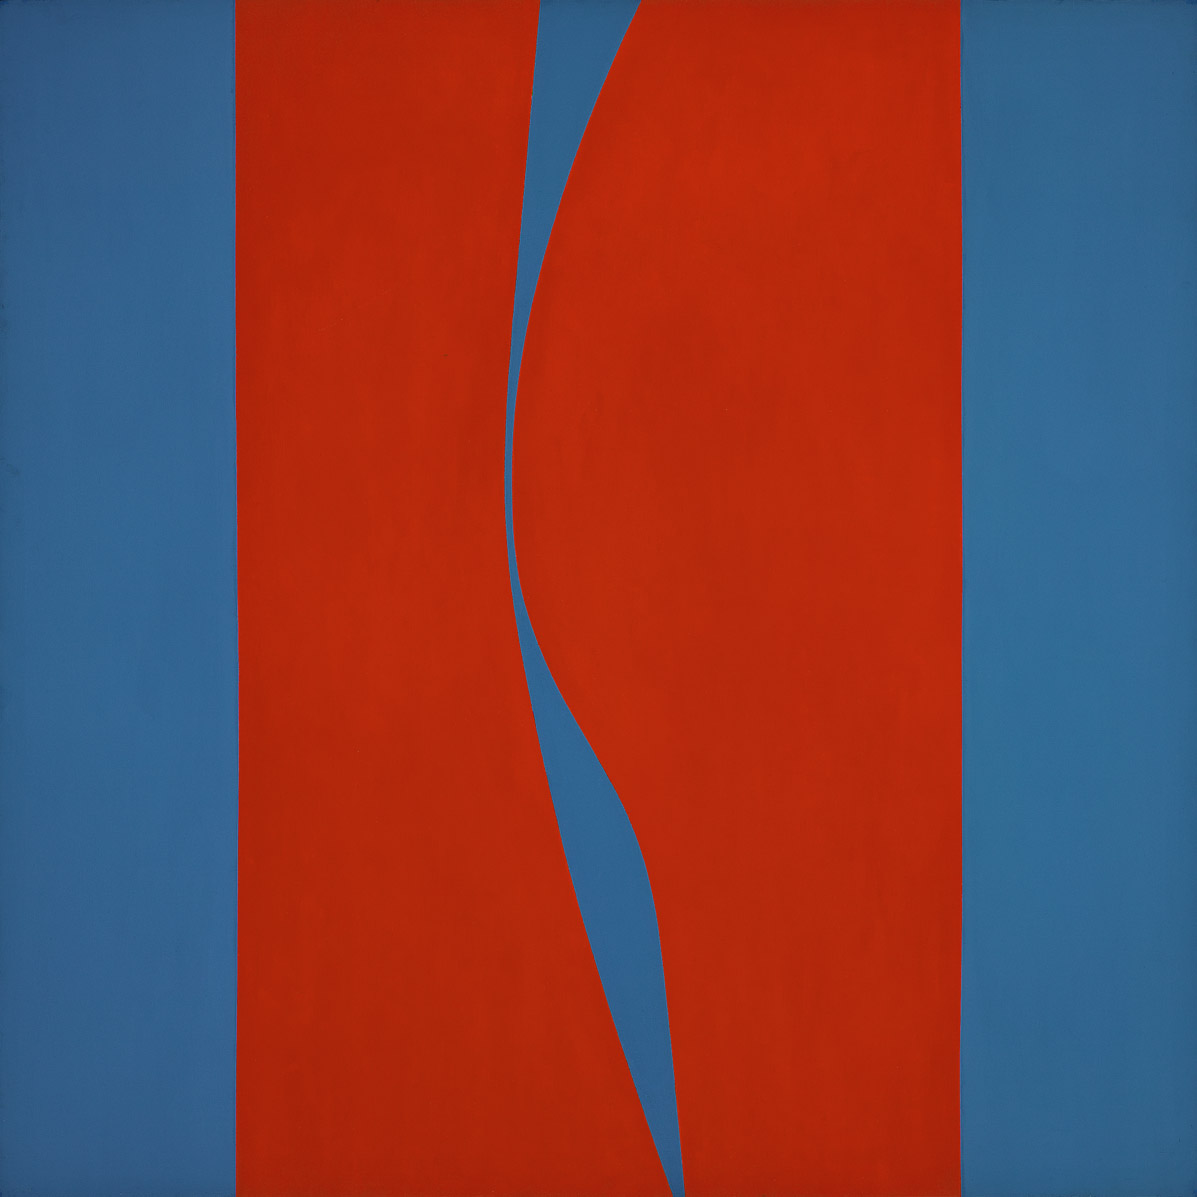 Untitled (March) , 1967  acrylic on canvas 60 x 60 inches; 152.4 x 152.4 centimeters